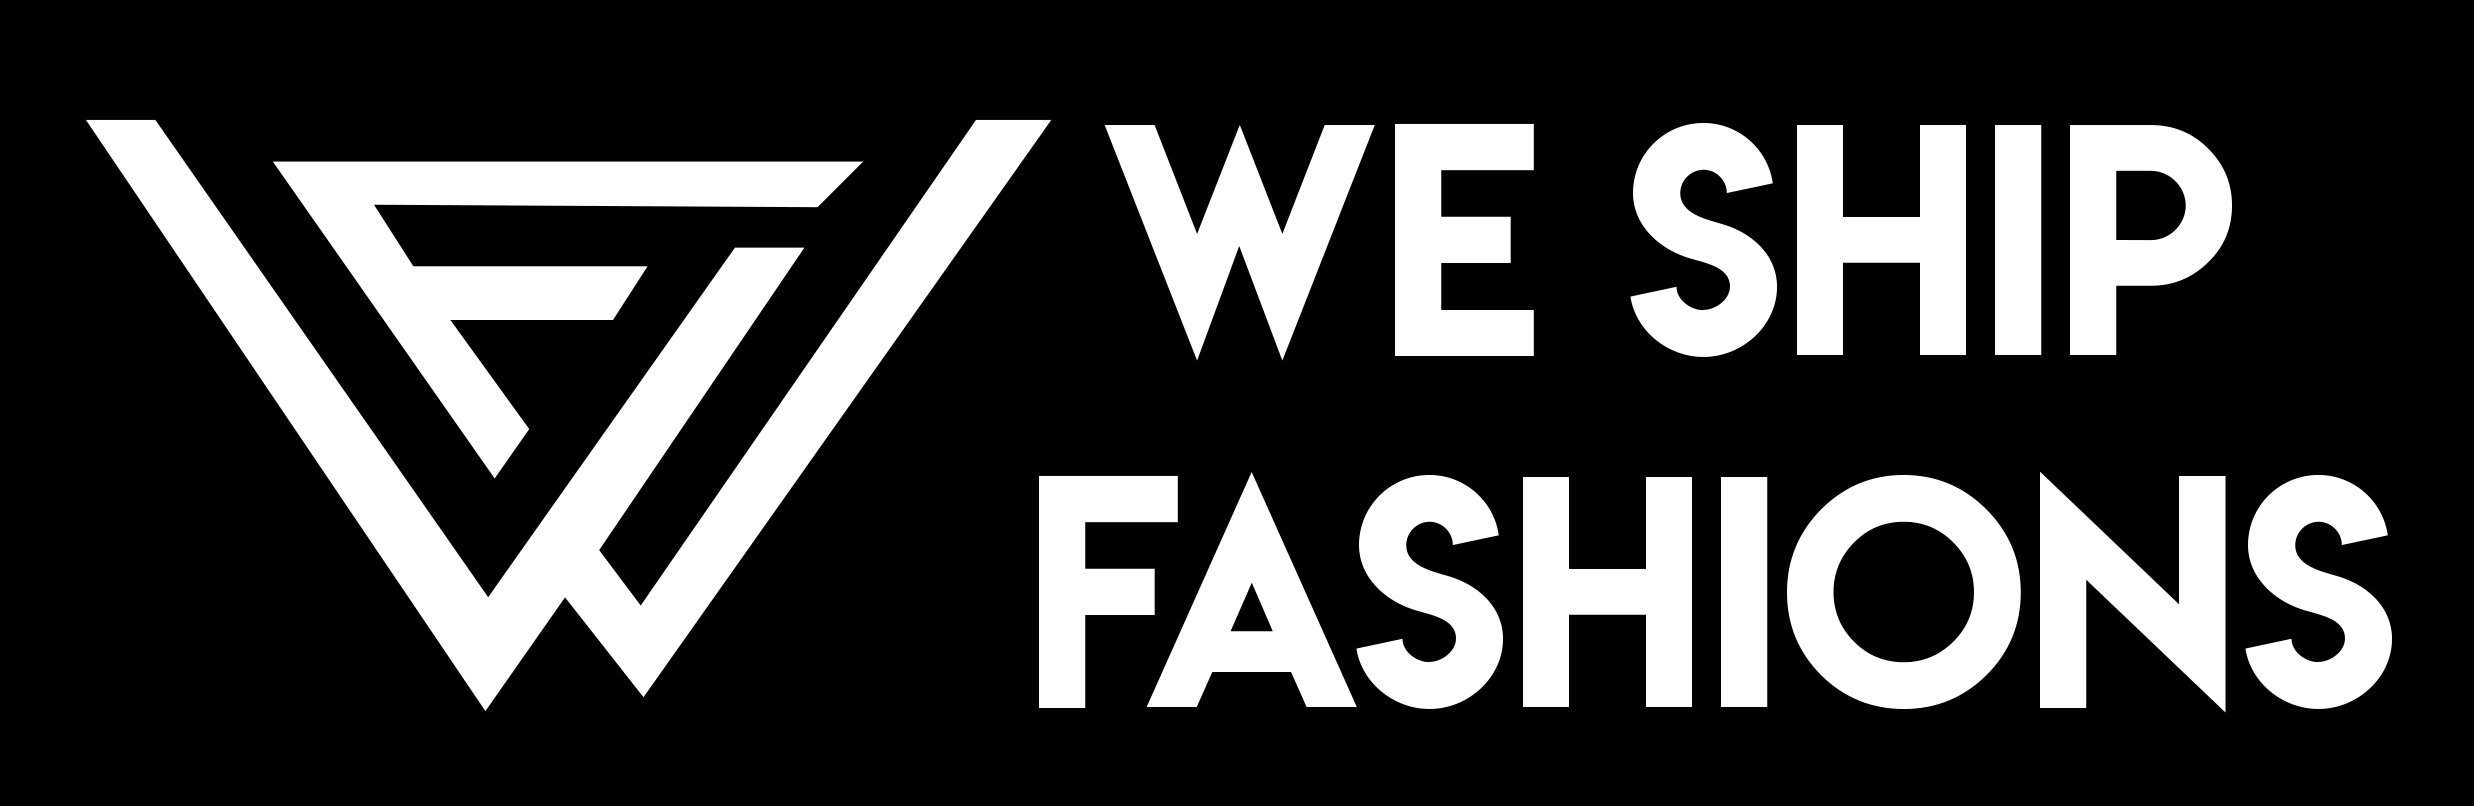 We Ship Fashions